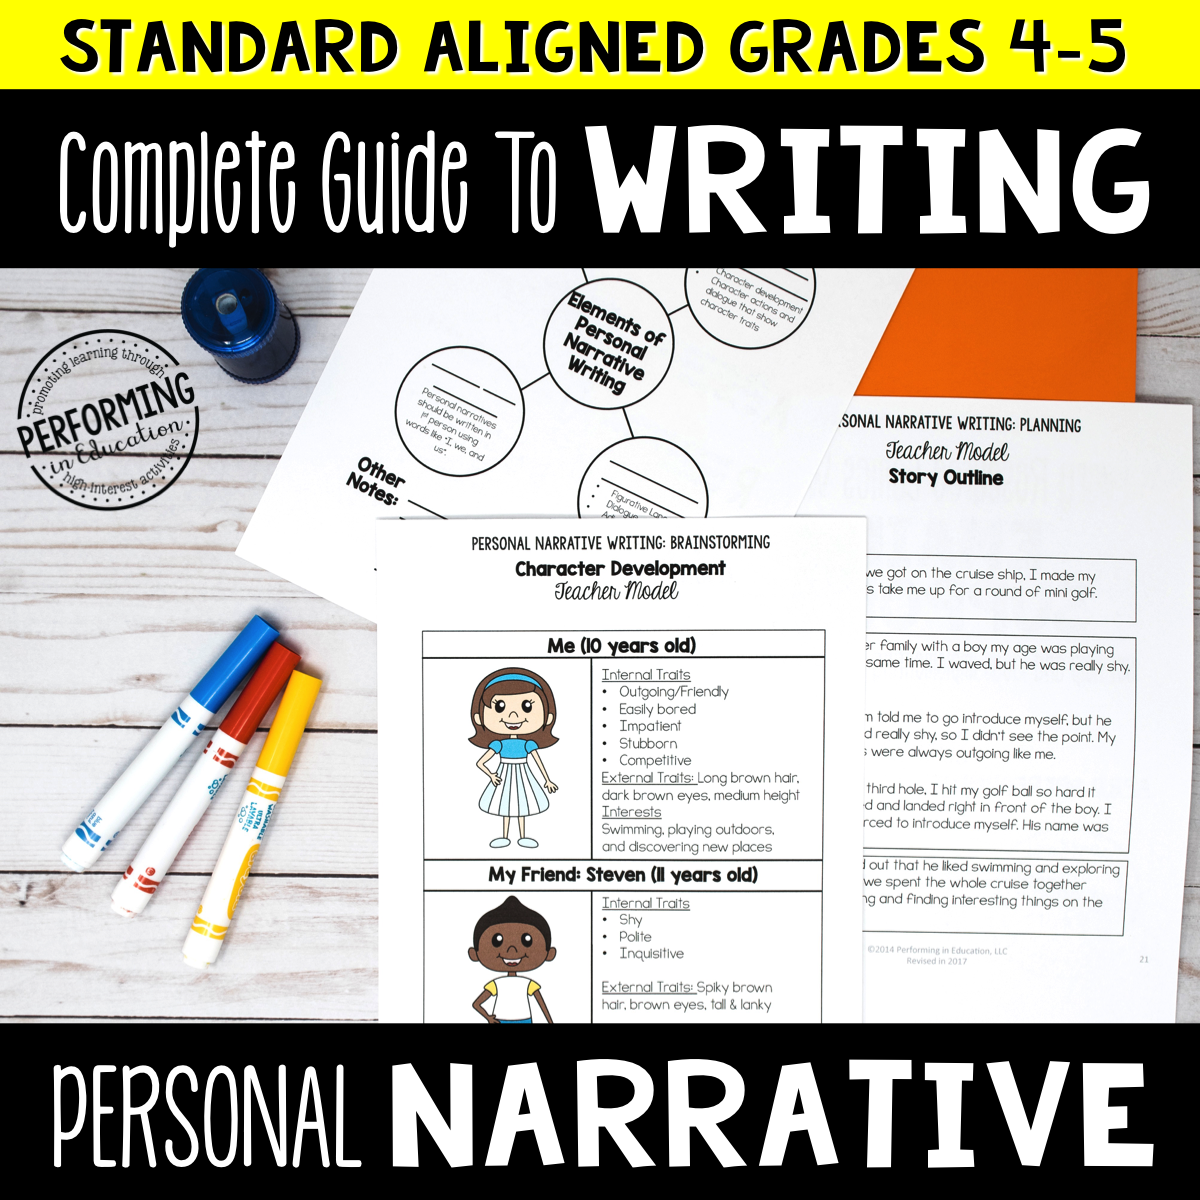 Complete Guide to Teaching Personal Narrative Writing Grades 4-5 00004